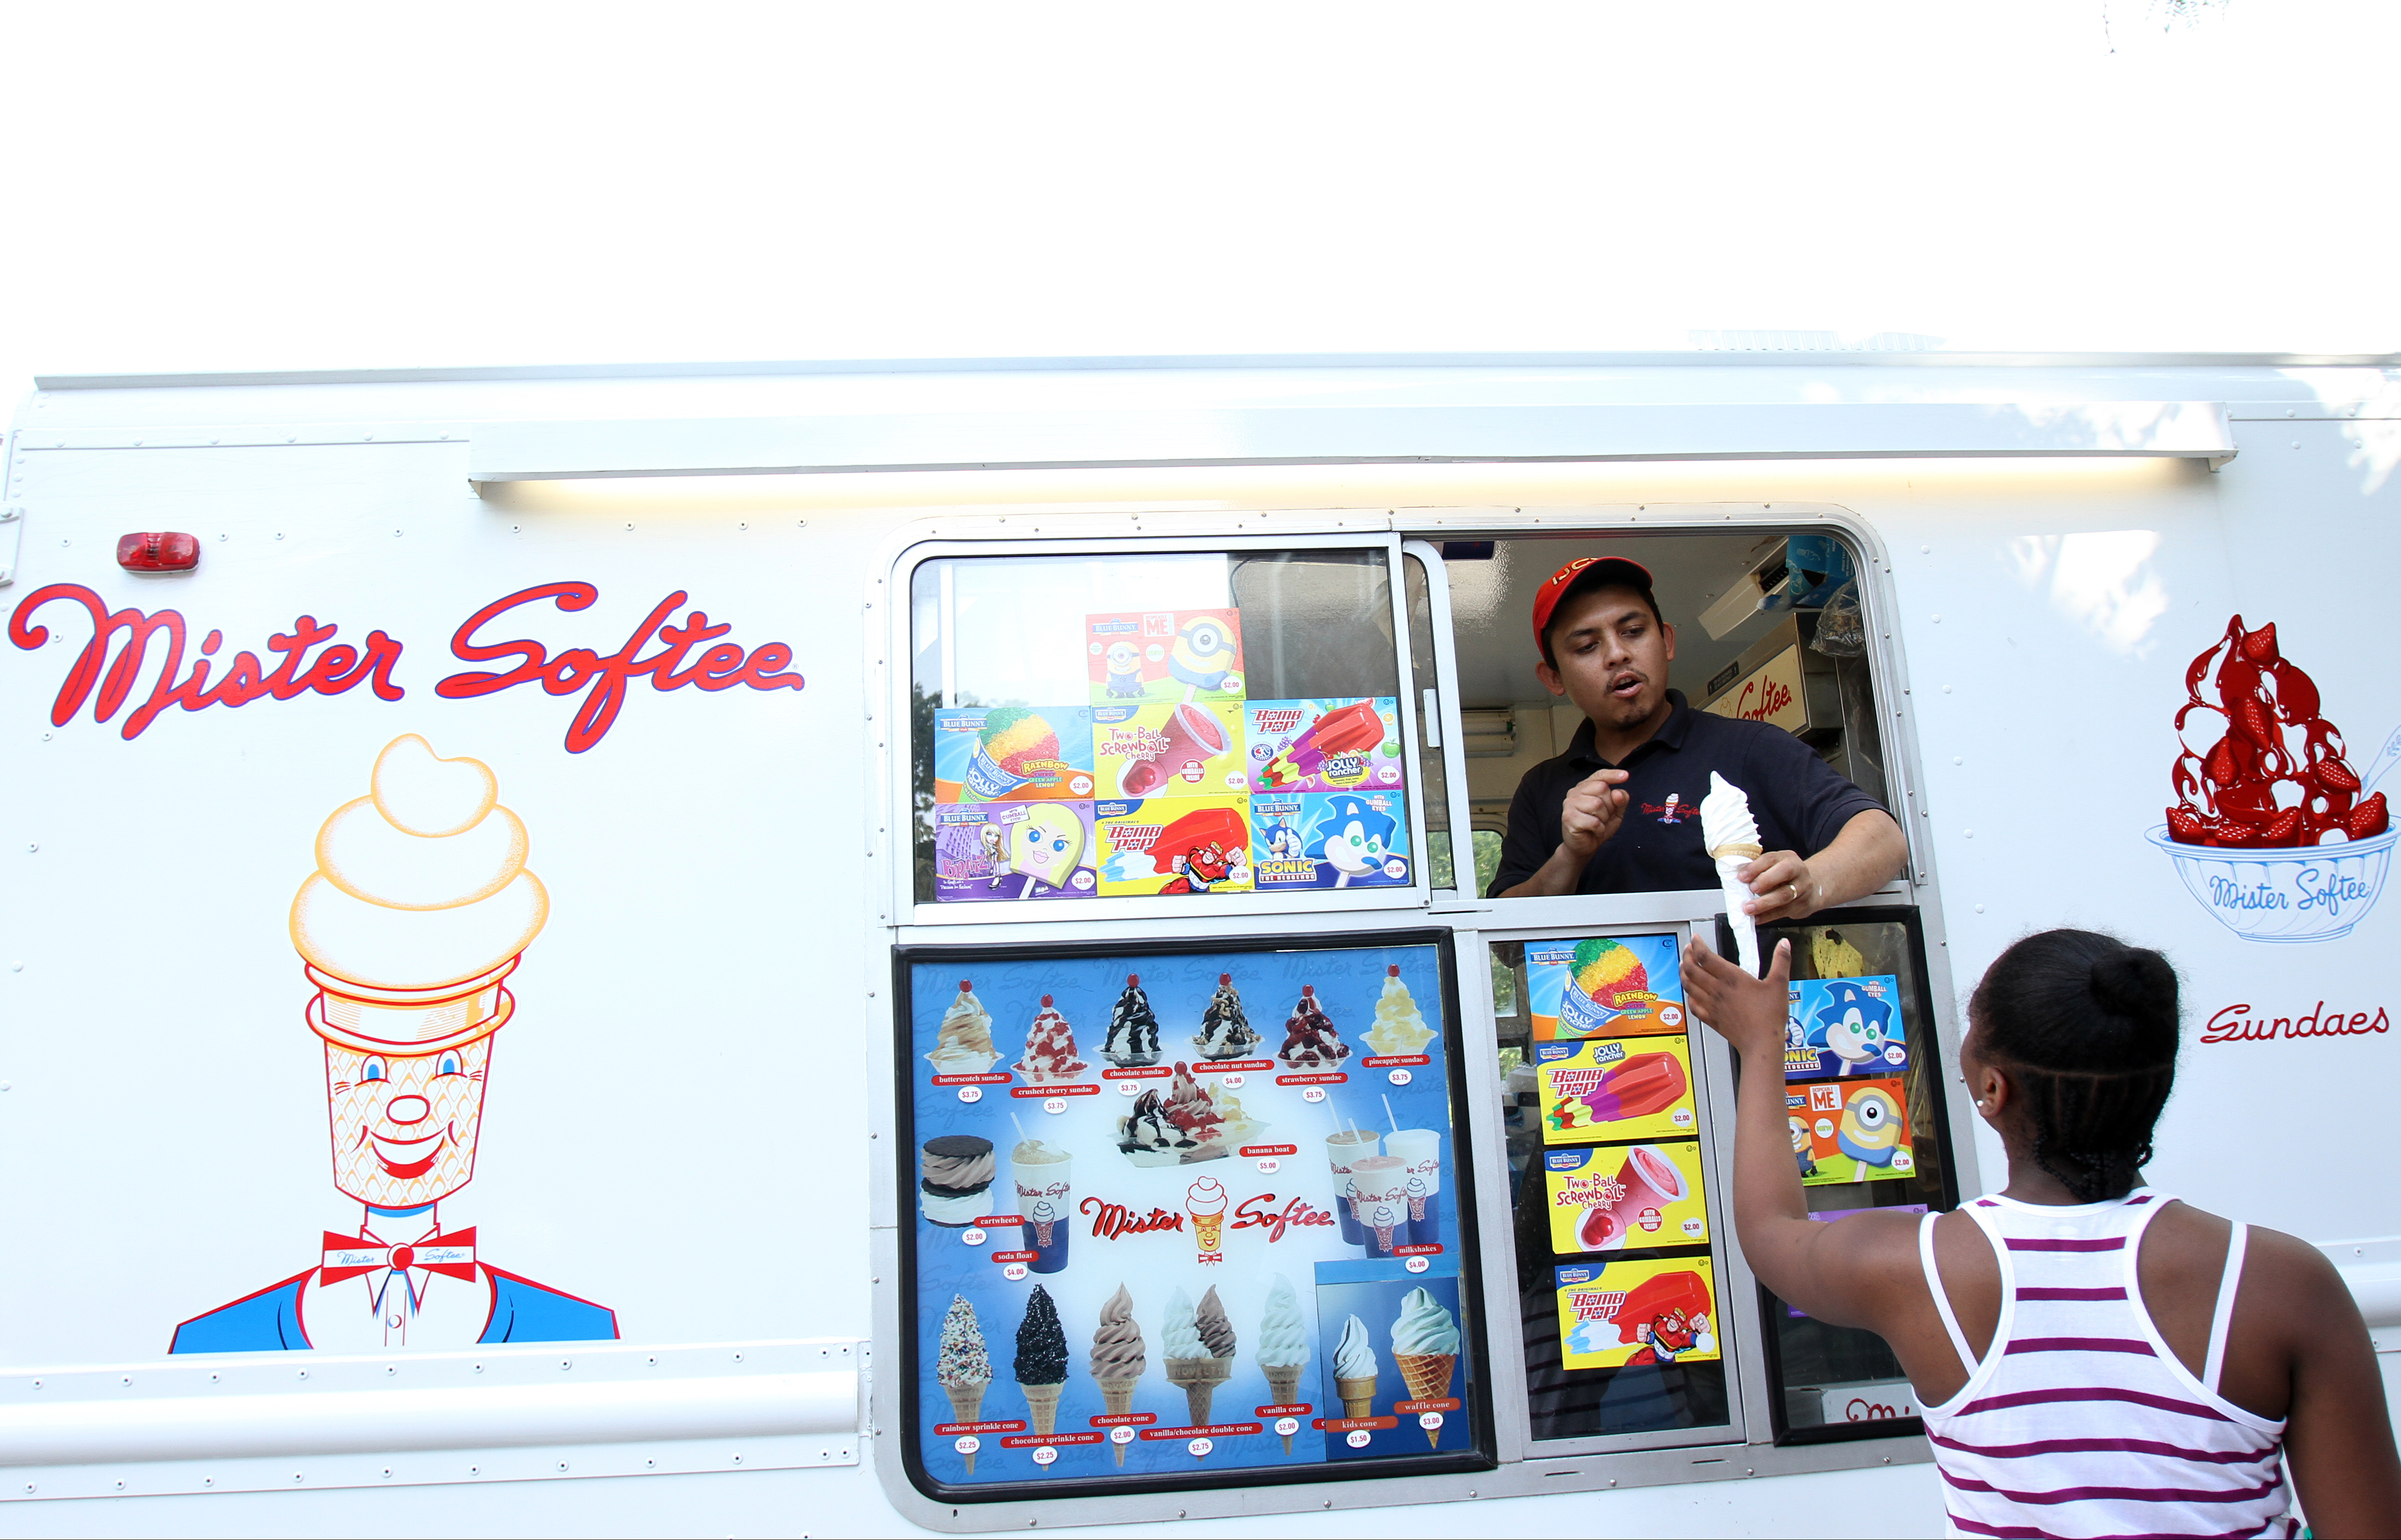 Mister Softee opens another brick-and-mortar shop in N.J.